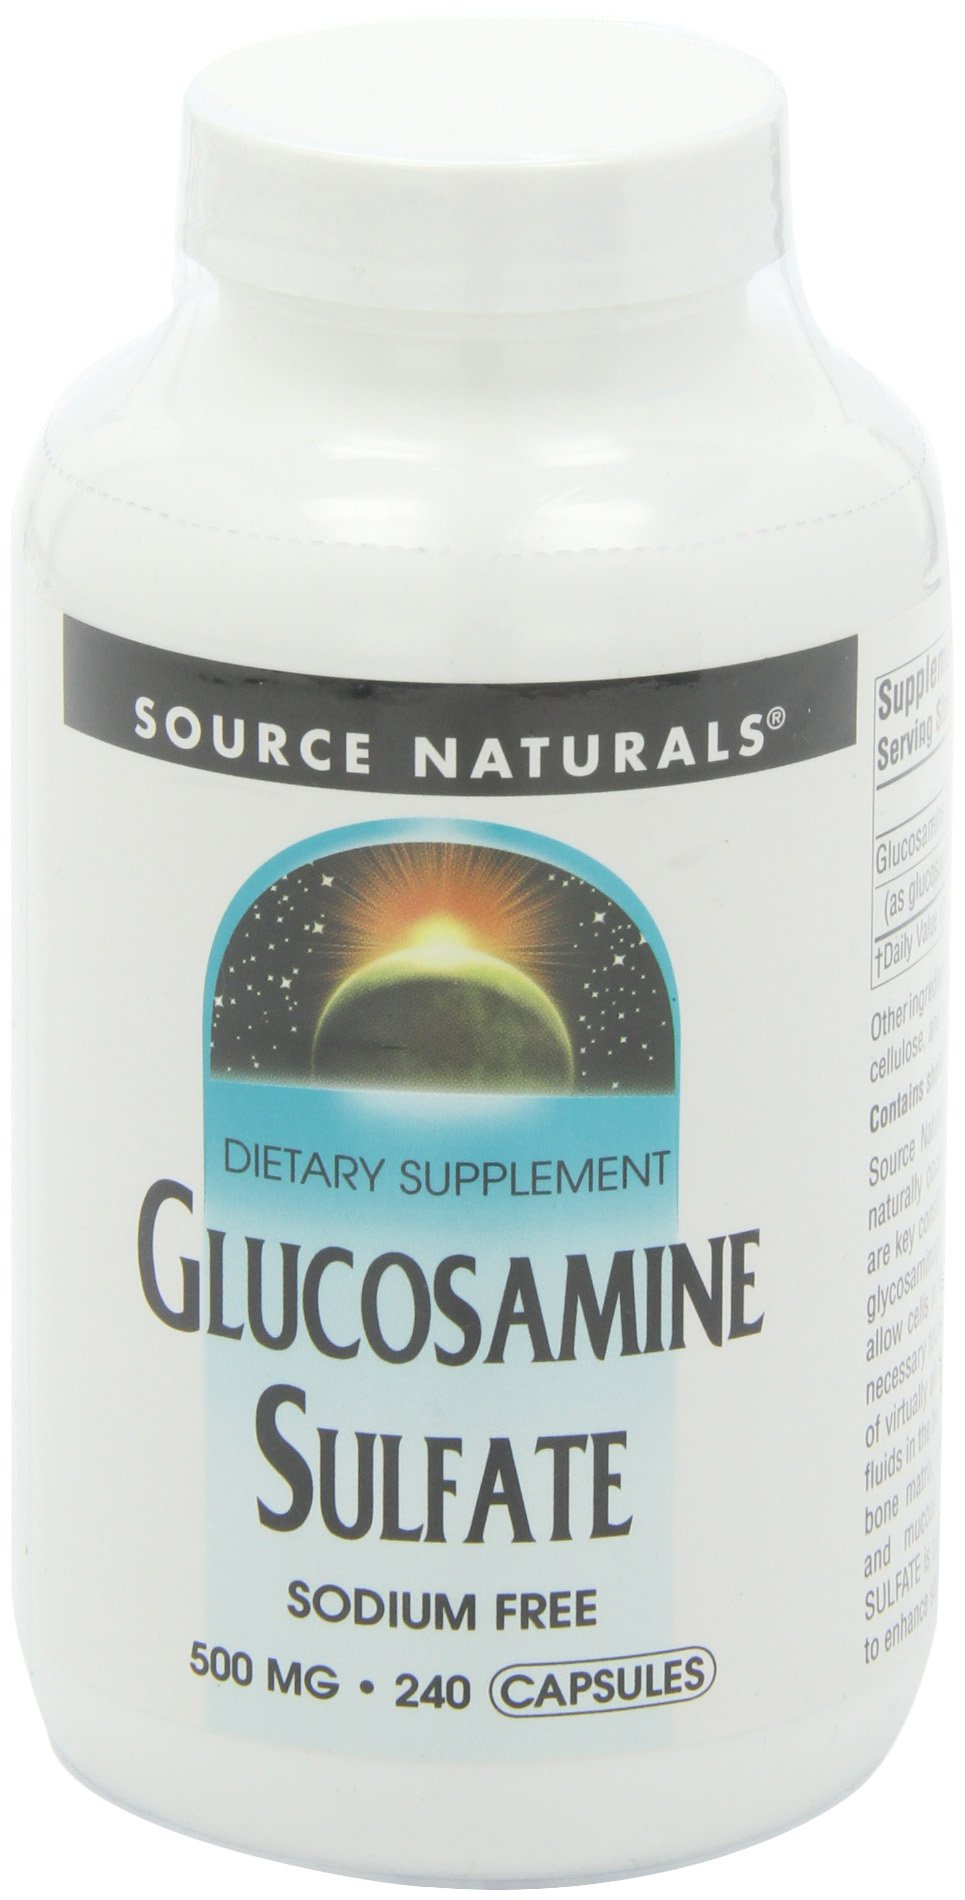 Source Naturals Glucosamine Sulfate 500 Mg, The Nutritional Building Block of Healthy Cartilage, 240 Capsules by Source Naturals